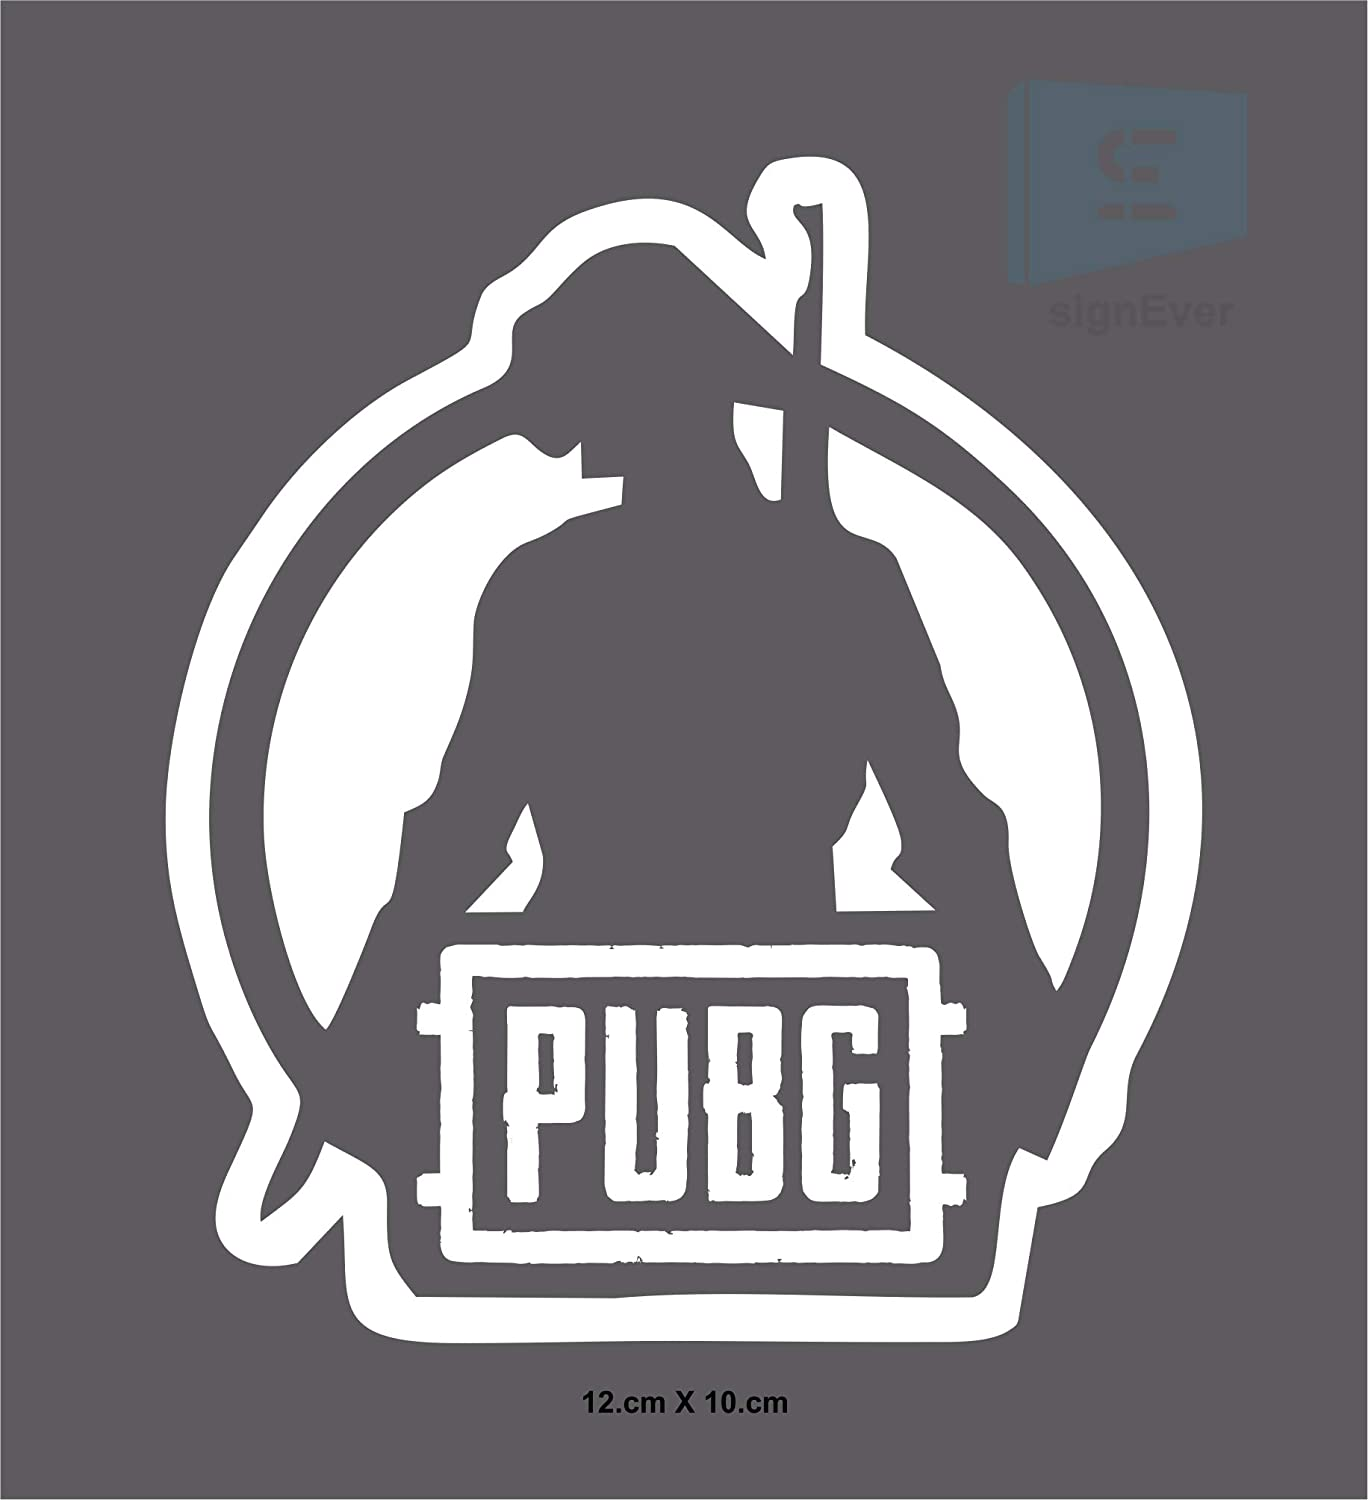 Sign ever pubg bike sticker for royal enfield classic 350 500 tank batterybox stylish boy white black decals l x h 12 00 x 10 00 cms pack of 2